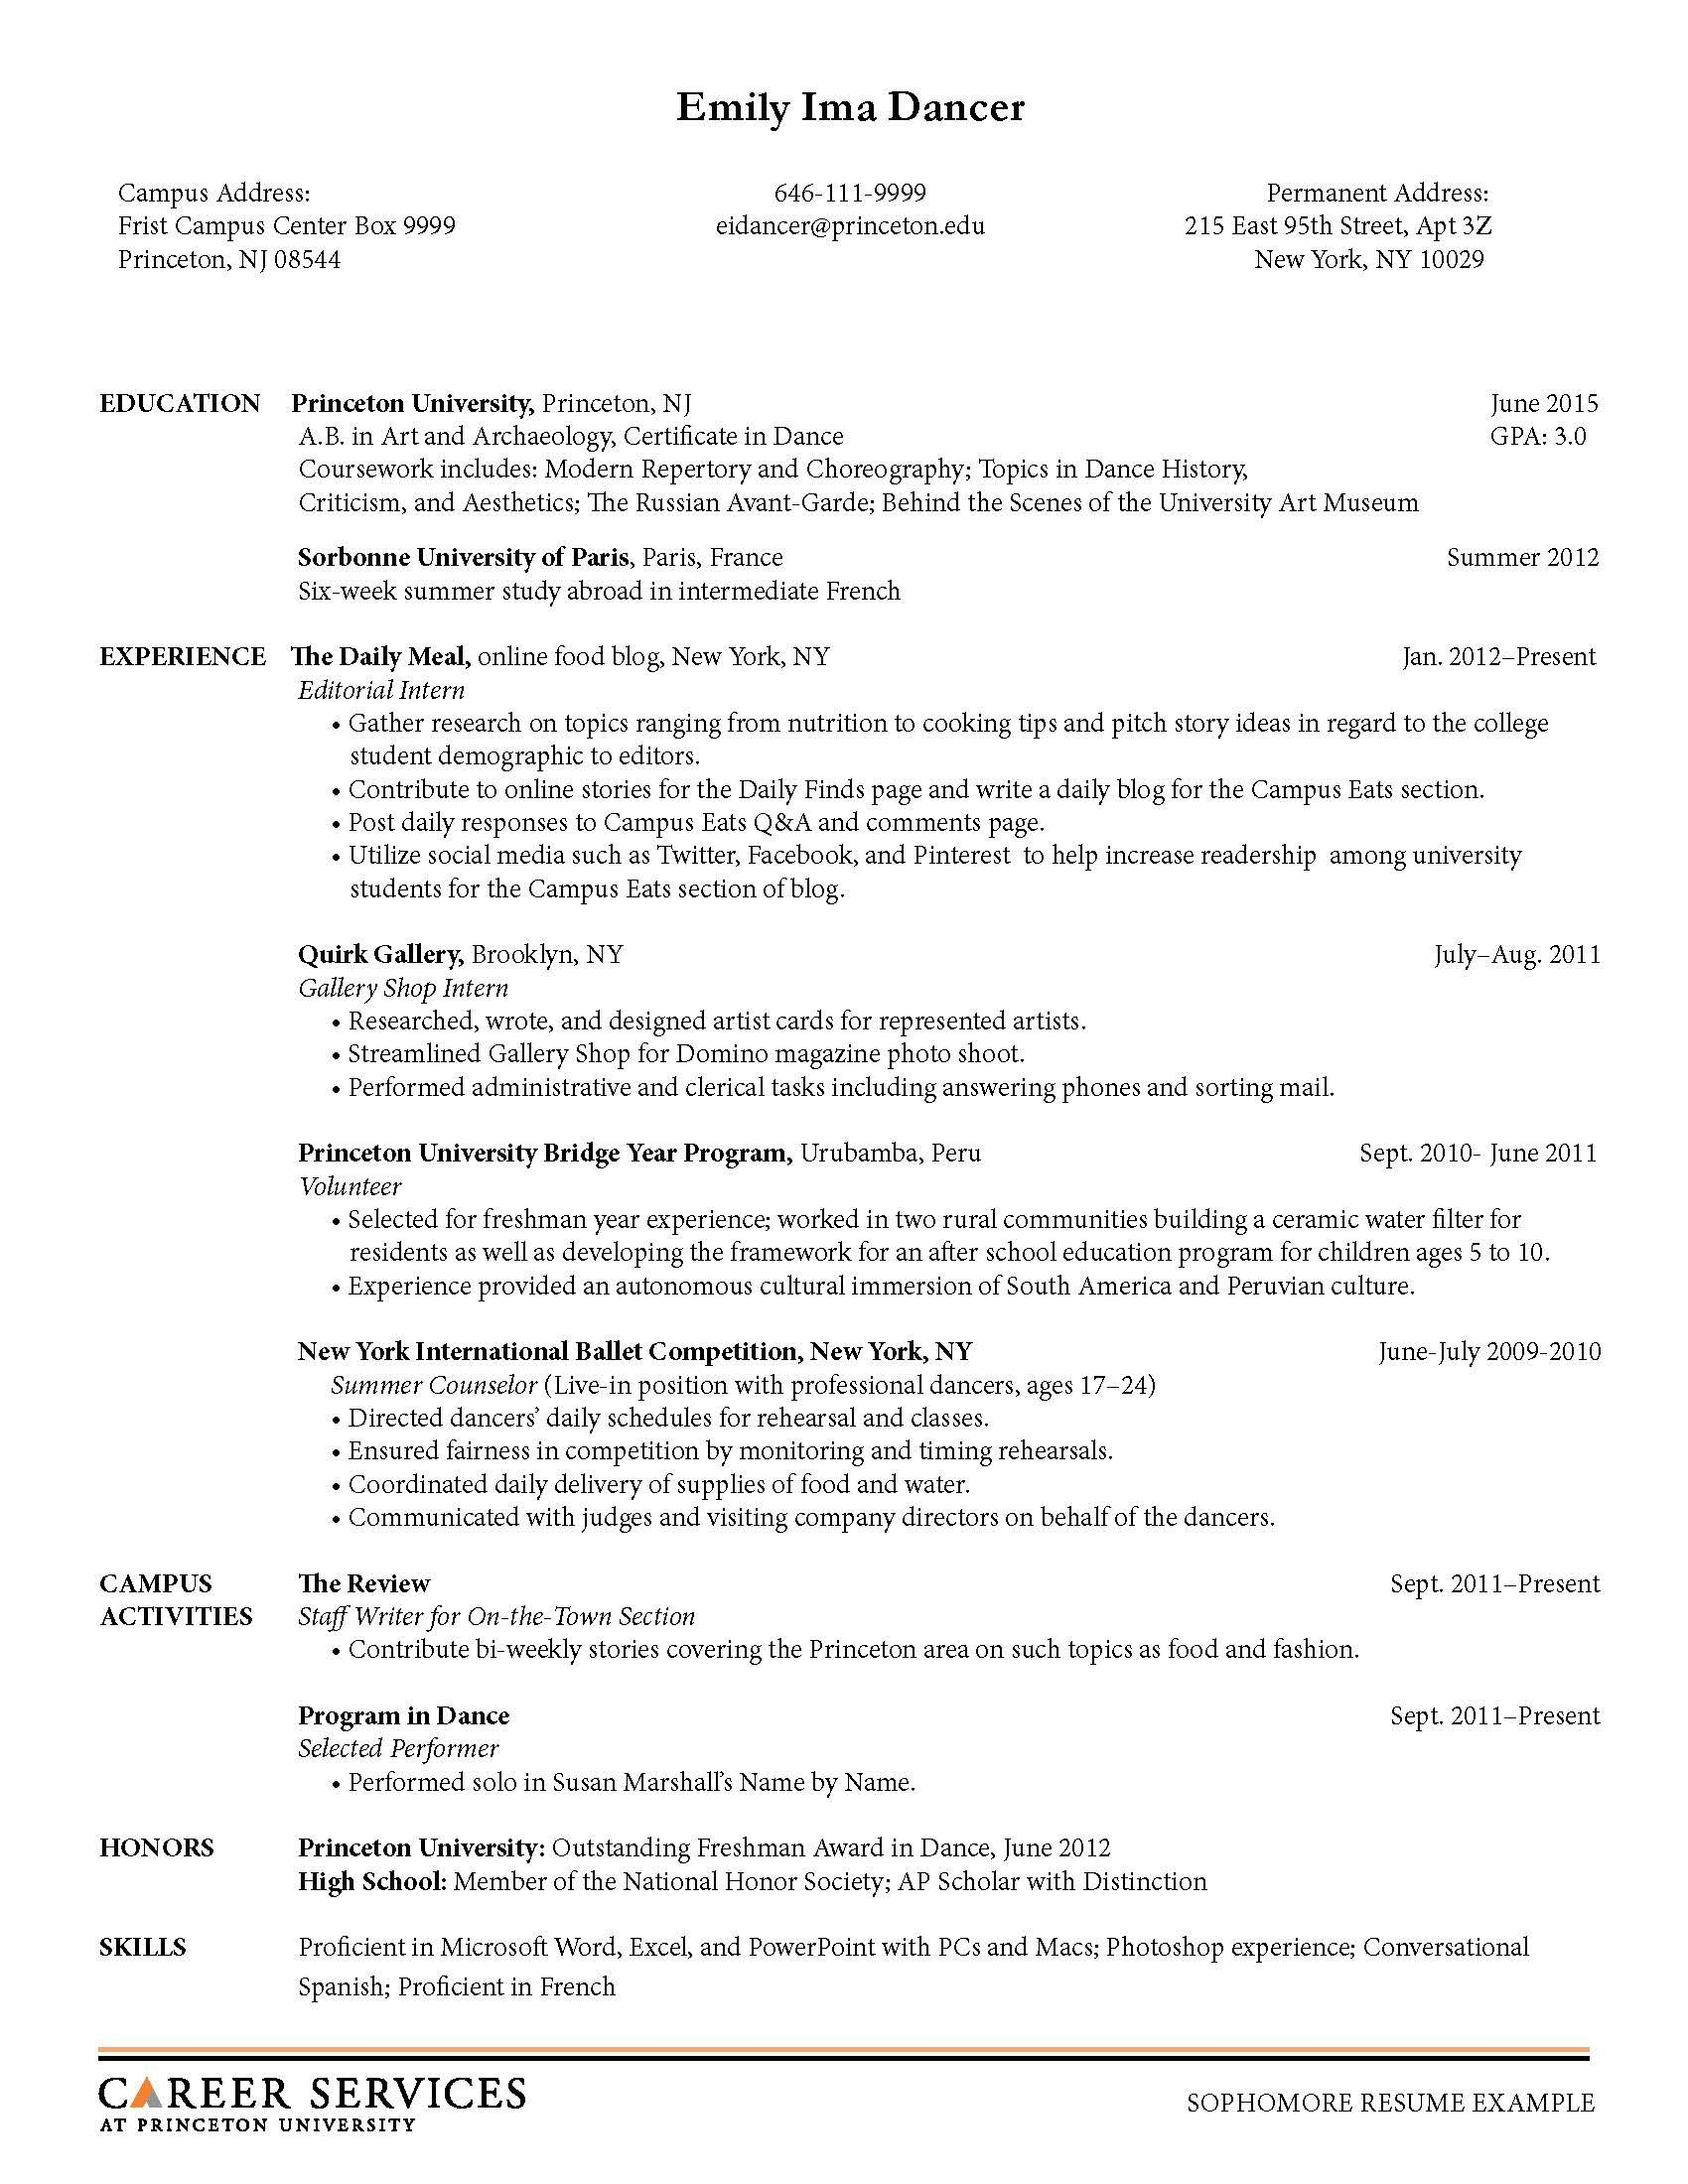 Opposenewapstandardsus  Pleasant Sample Resume Resume And Career On Pinterest With Outstanding Writing A Resume Cover Letter Besides Grocery Store Resume Furthermore Examples Of Objectives For Resume With Cool Resume One Page Also How To Write A Proper Resume In Addition Fast Food Resume Sample And File Clerk Resume As Well As Fake Resume Generator Additionally Engineering Manager Resume From Pinterestcom With Opposenewapstandardsus  Outstanding Sample Resume Resume And Career On Pinterest With Cool Writing A Resume Cover Letter Besides Grocery Store Resume Furthermore Examples Of Objectives For Resume And Pleasant Resume One Page Also How To Write A Proper Resume In Addition Fast Food Resume Sample From Pinterestcom